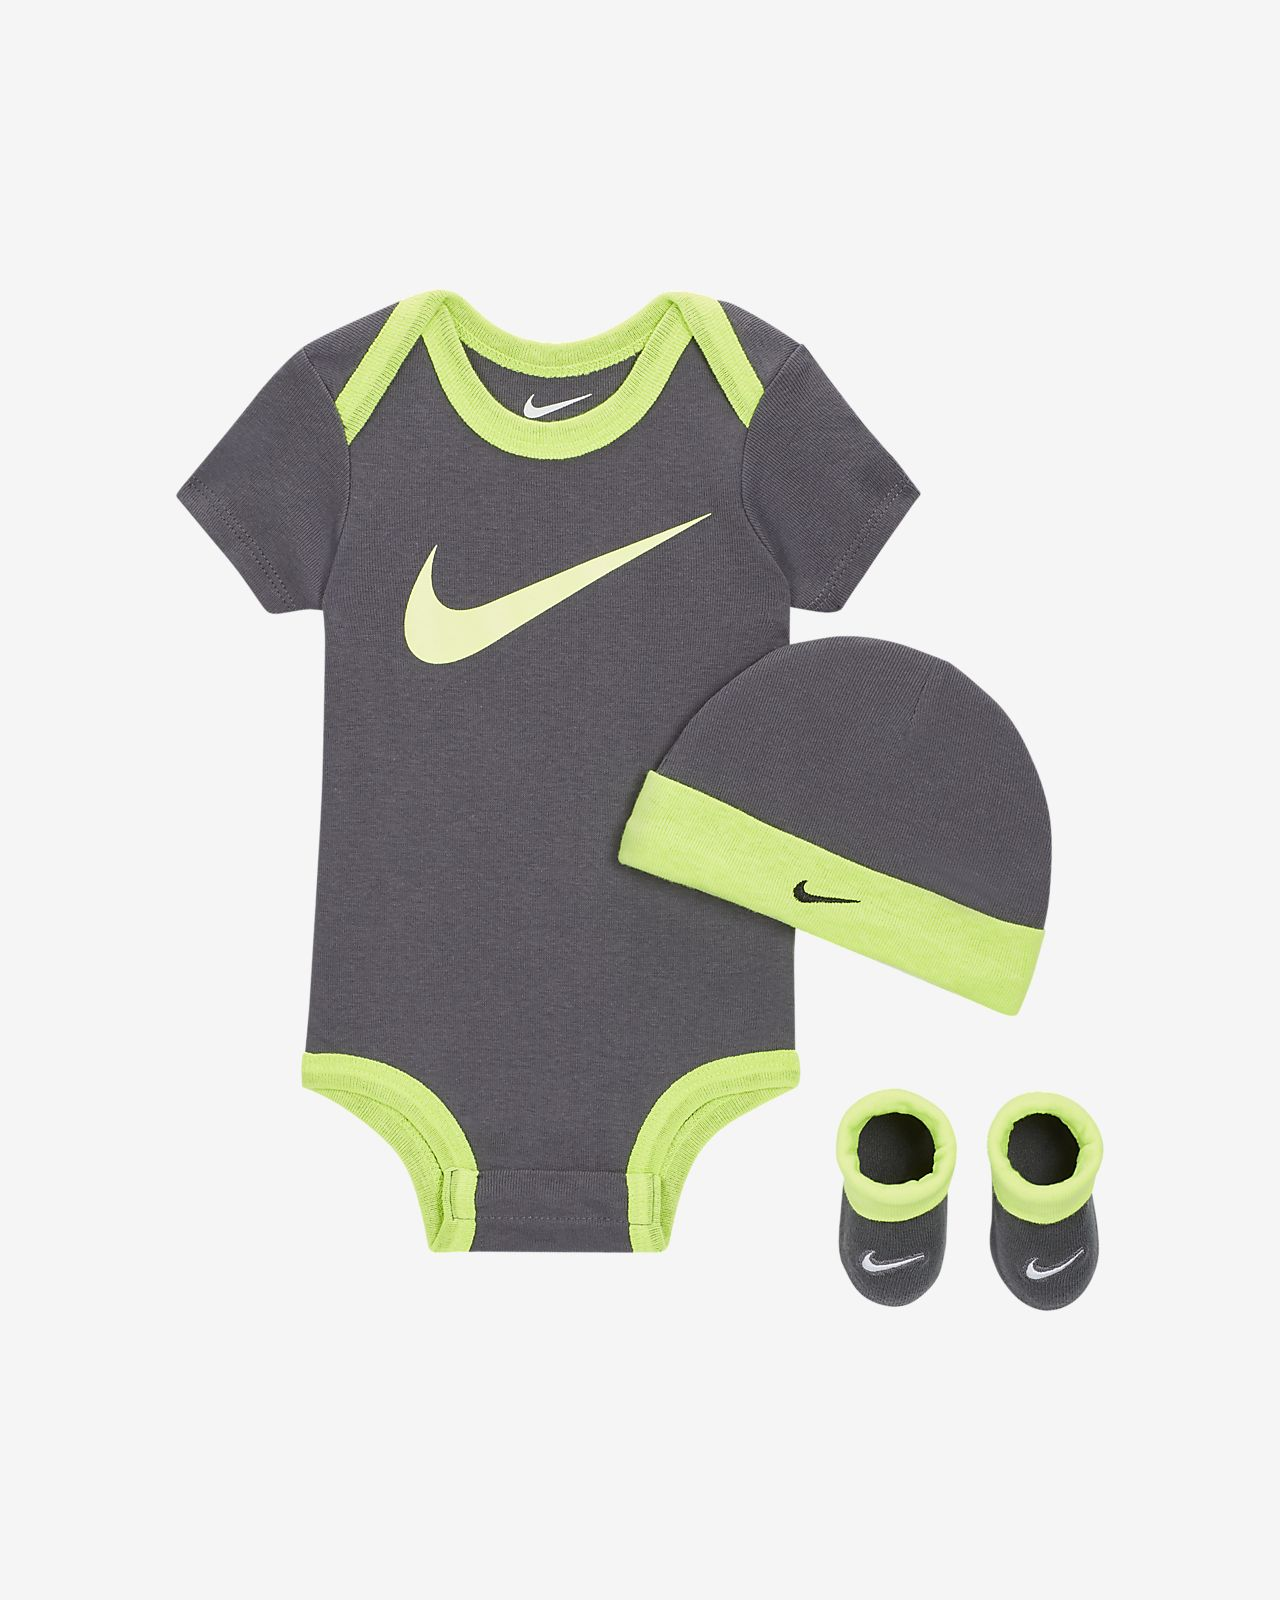 Nike Baby Bodysuit, Hat and Booties Box Set